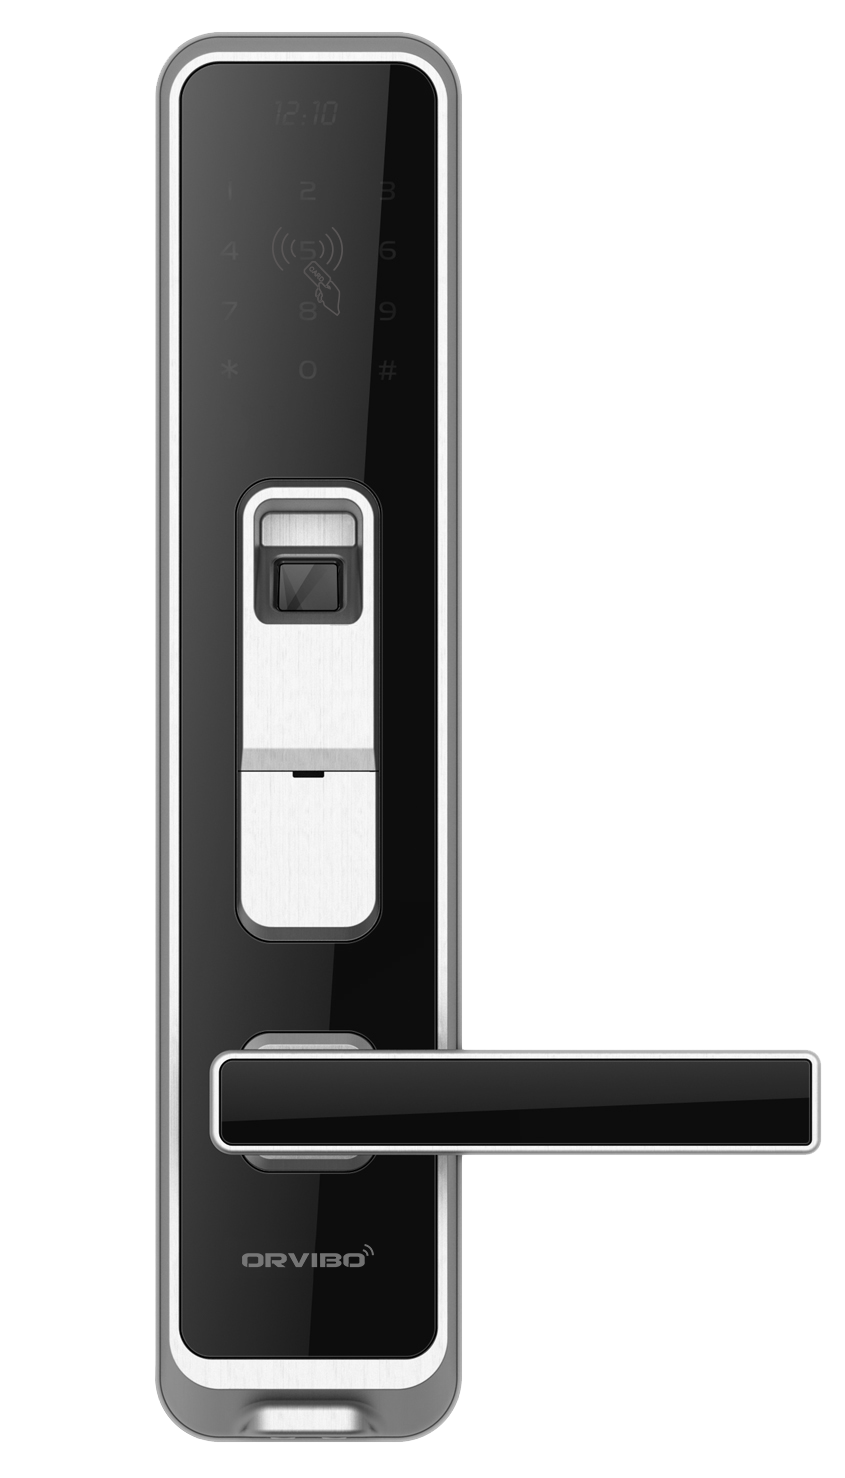 With Orvibo Smart Home Lock No Worry About Forgetting The Keys Or Cards Orvibo Smart Door Lock Has 5 Ways Of Acc Smart Home Locks Smart Door Locks Door Locks